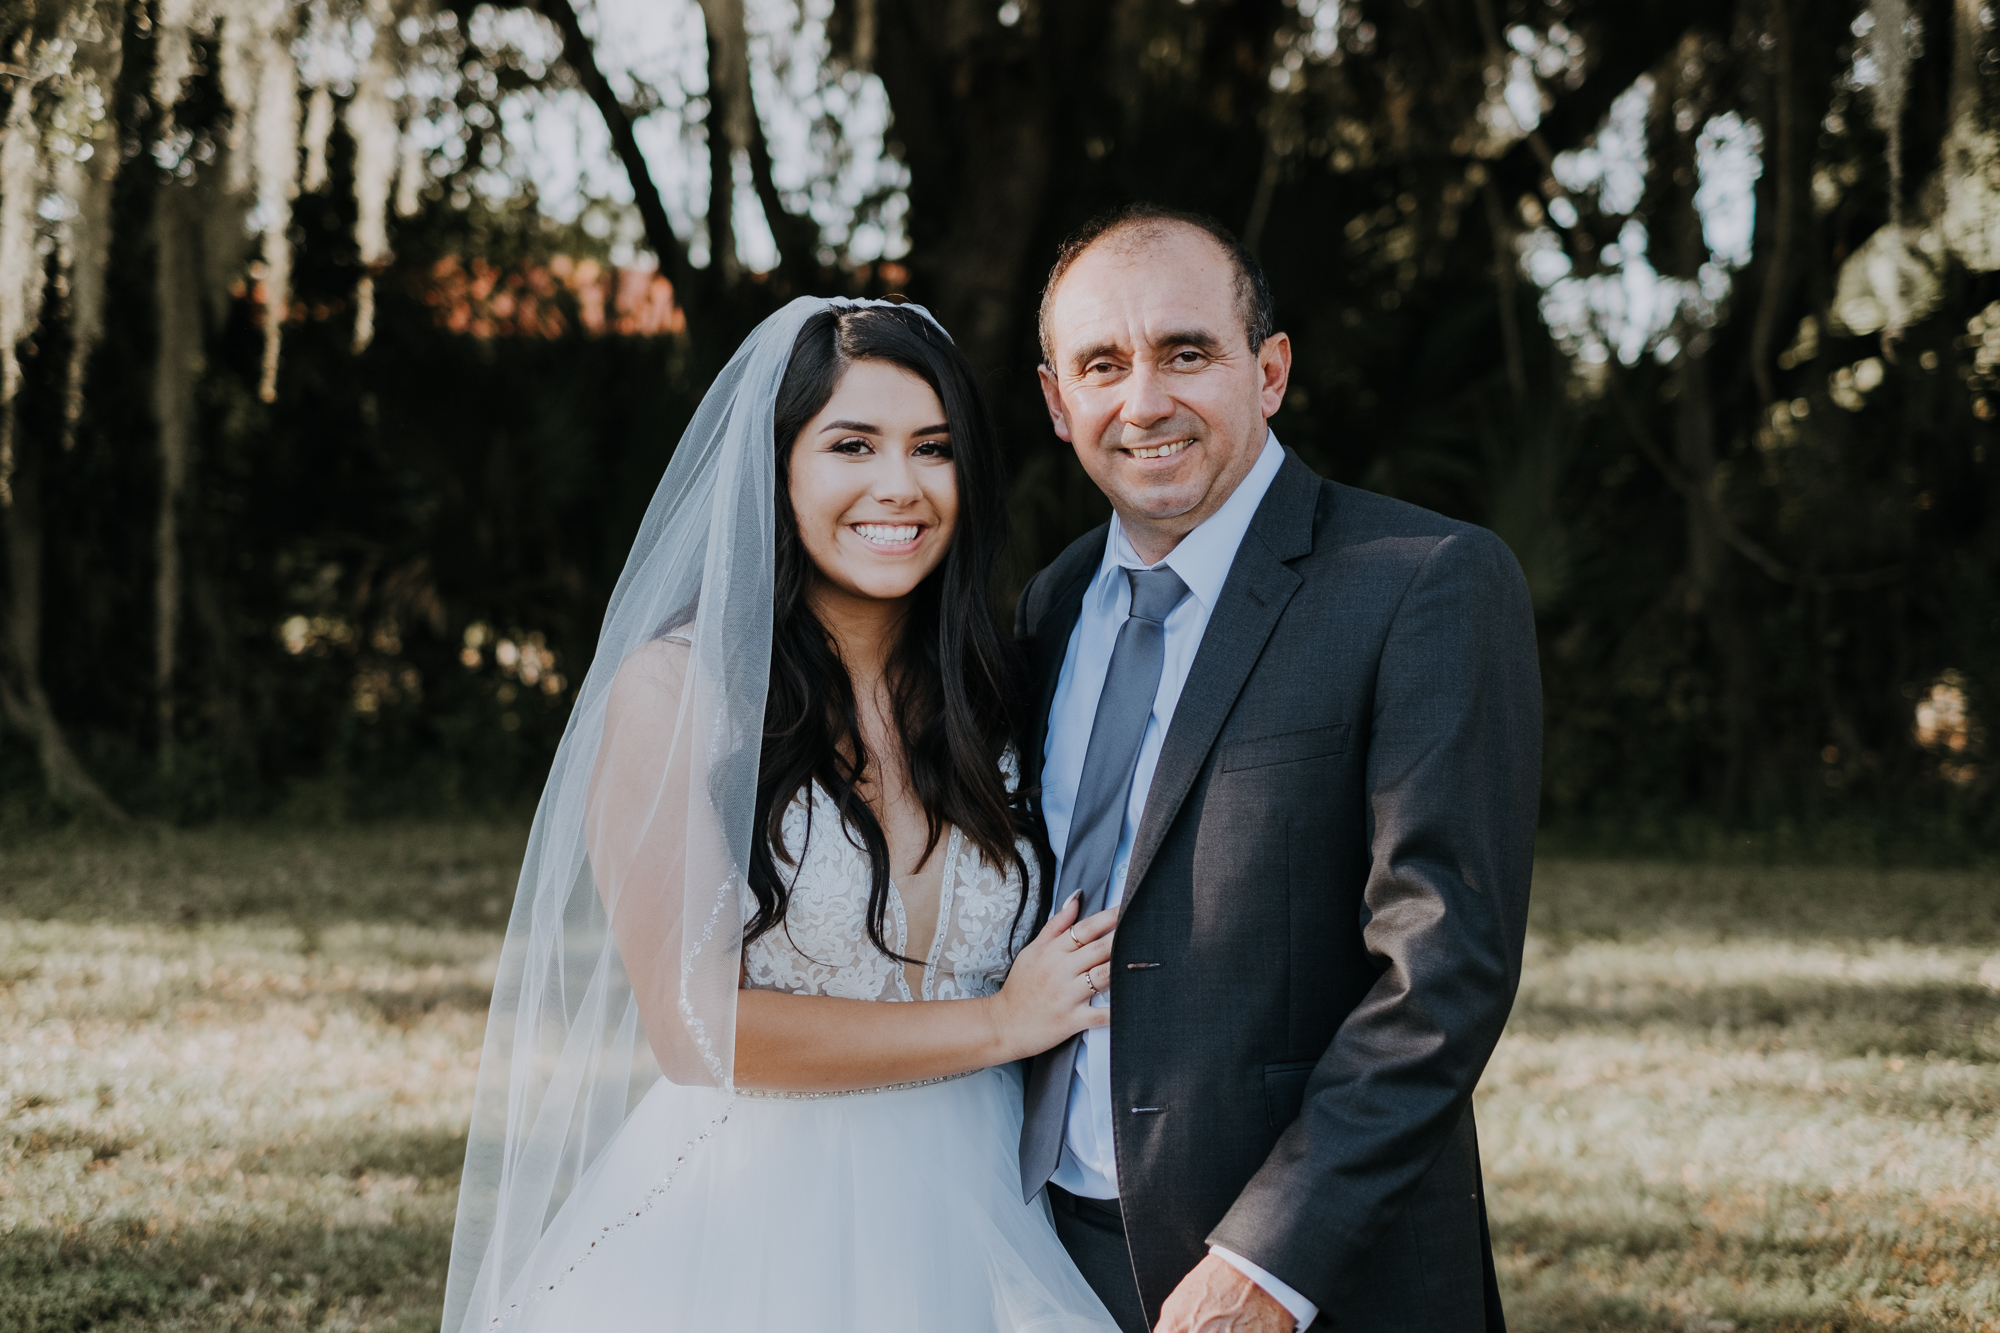 bride and dad | bride and father | daddy daughter portrait | wedding family portraits | Florida outdoor wedding